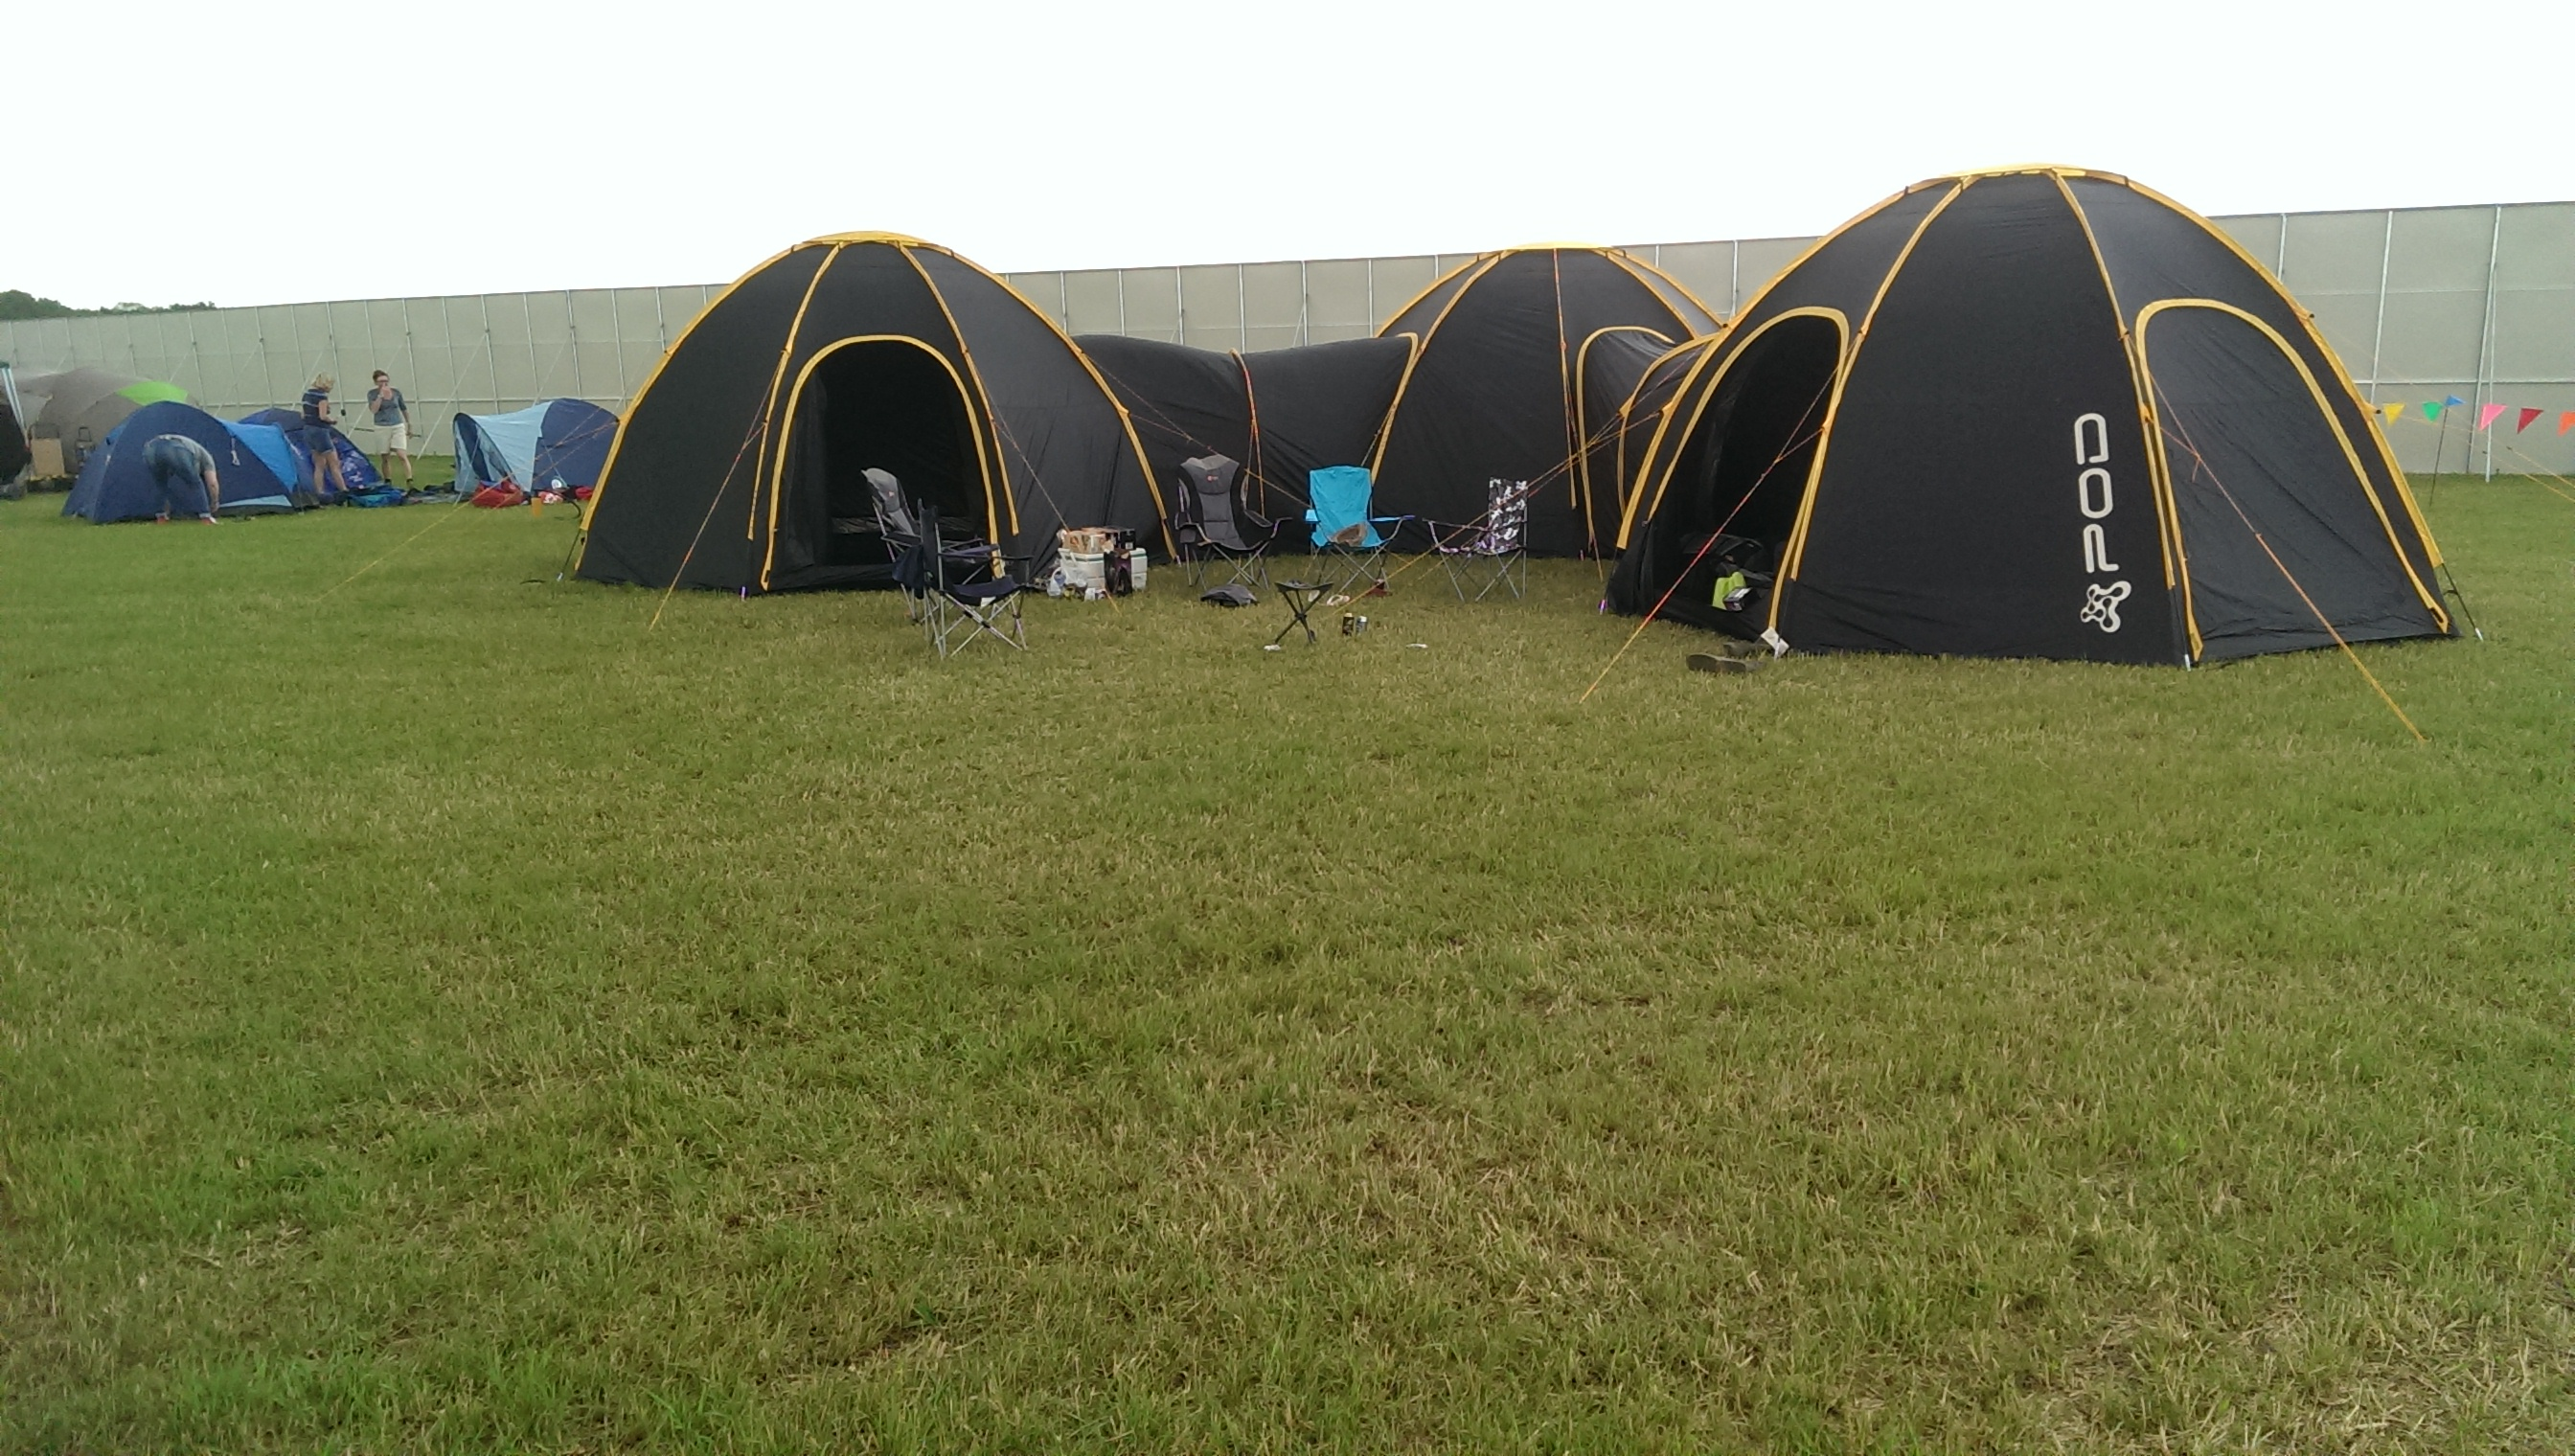 The 3 POD set up at the 2013 Secret Garden Party & POD Tents @ SGP 2013 - Pod Tents Tent Pods